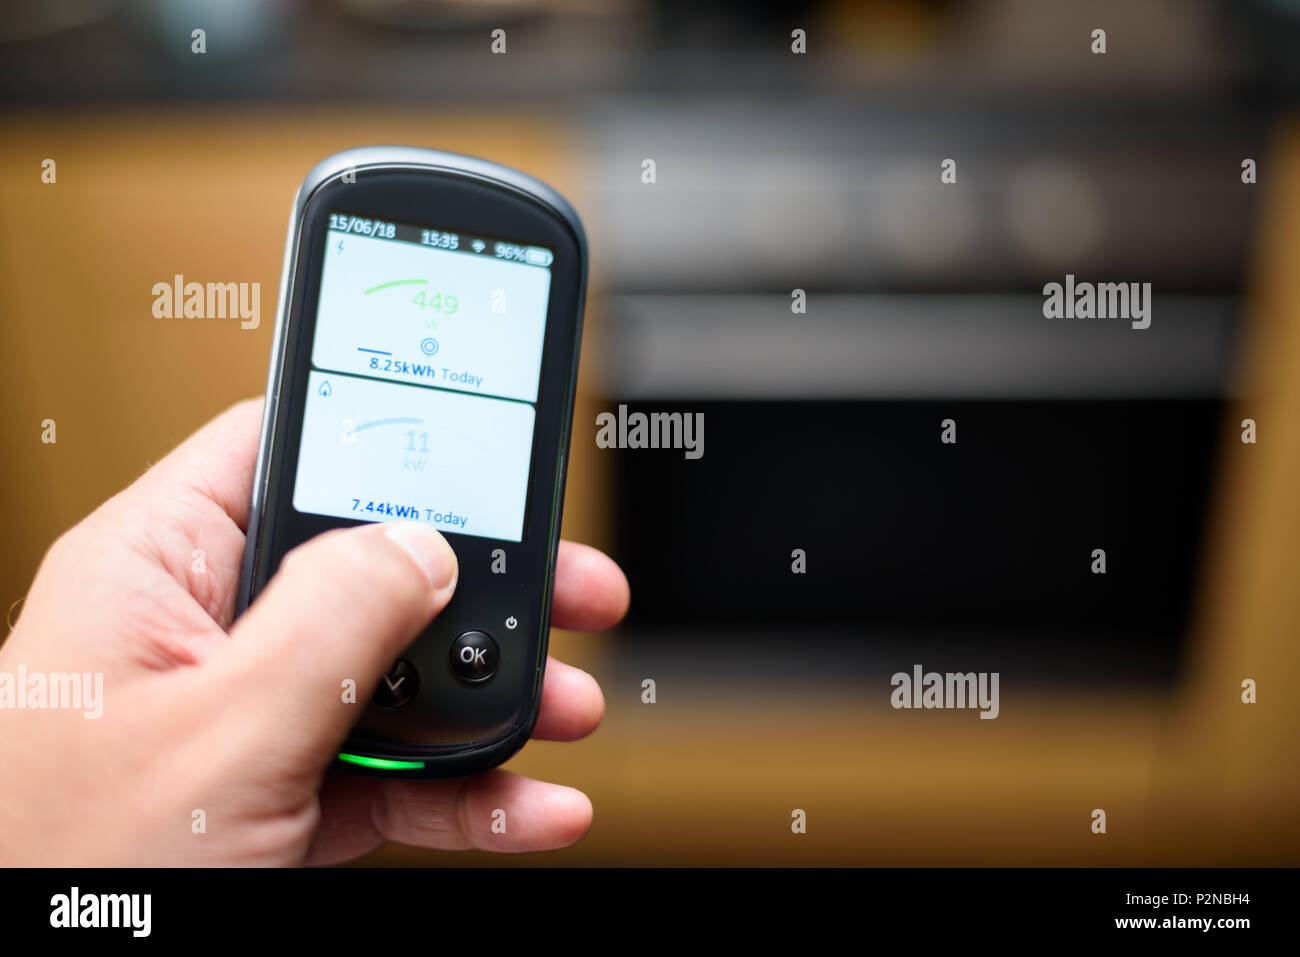 Man holding a Domestic Energy Smart Meter unit in a kitchen, Displaying Energy Usage in Real Time - Stock Image